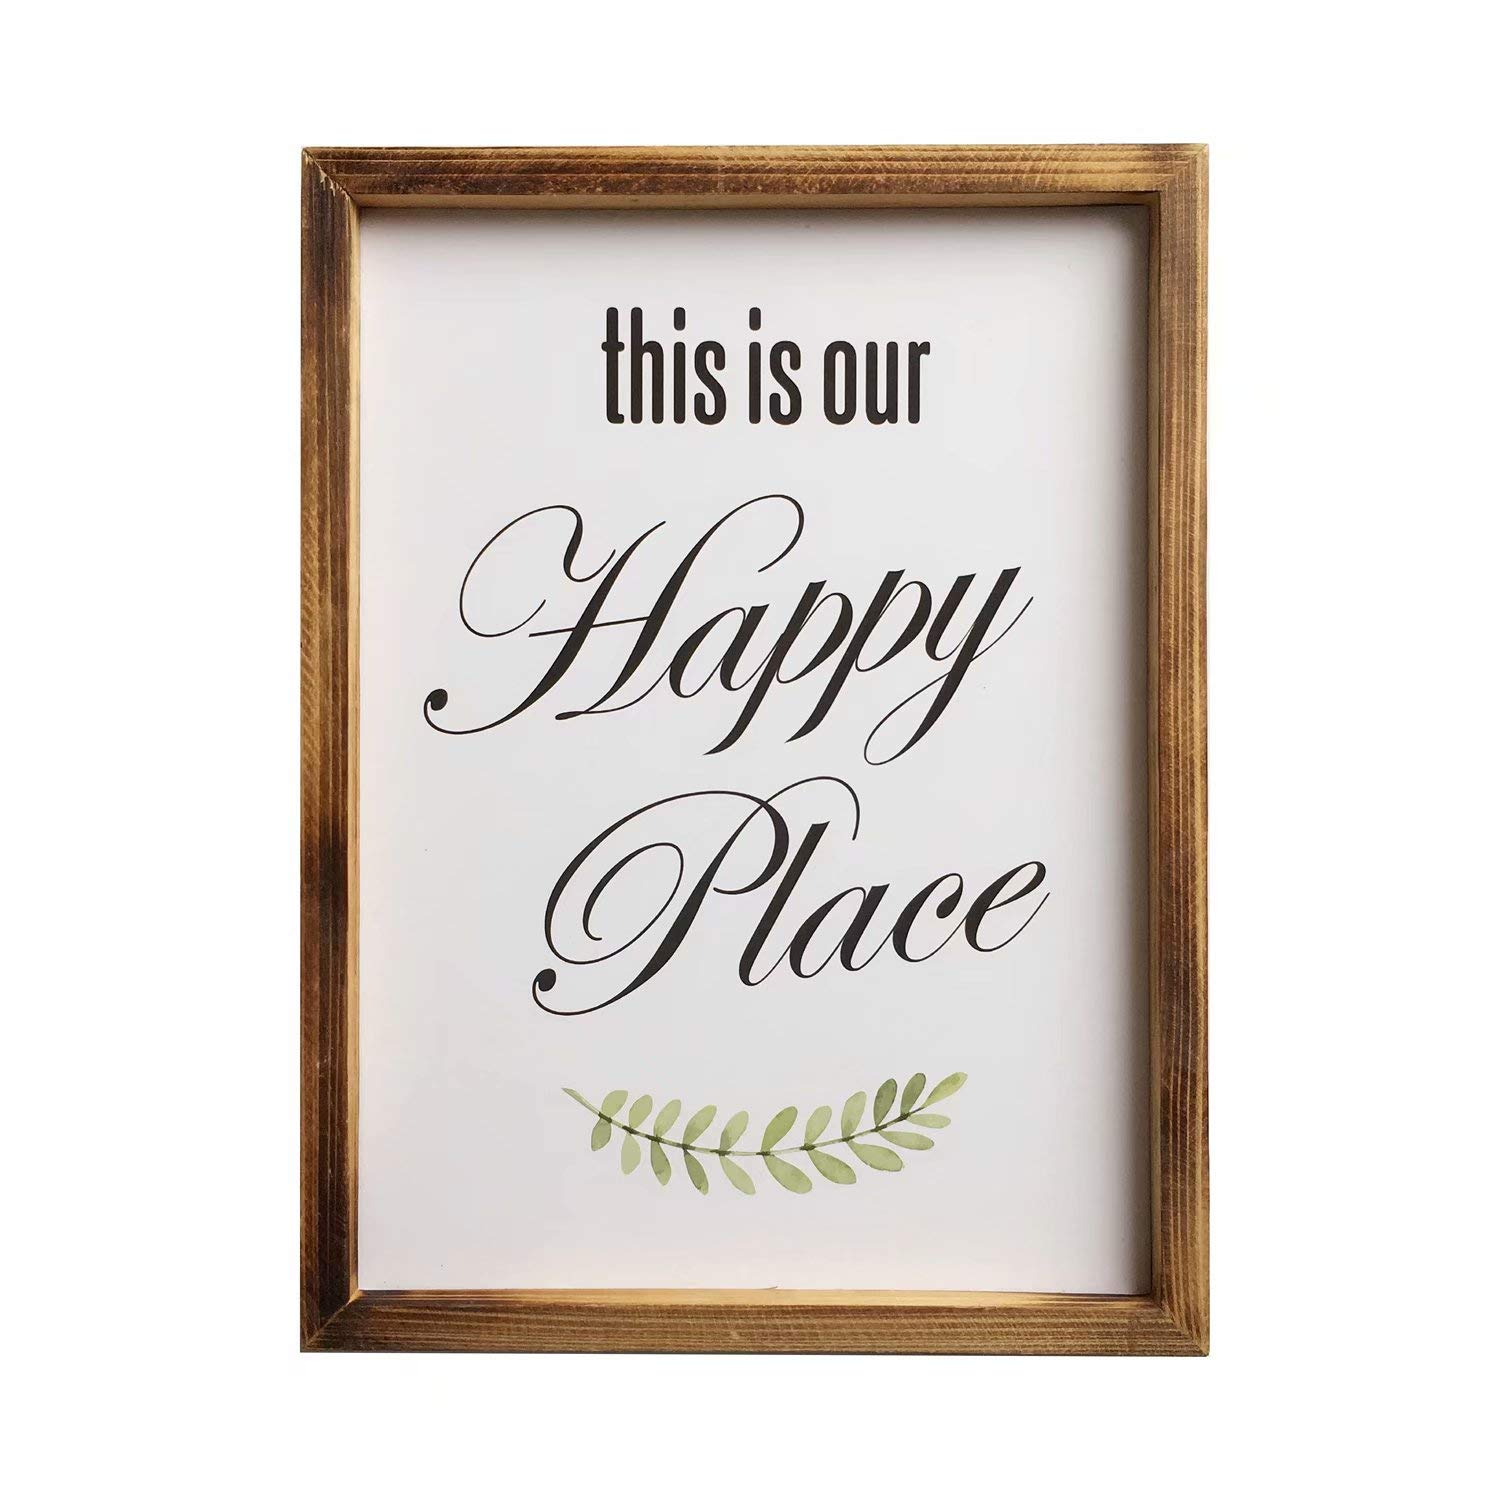 Jessac Distressed Wood Framed Farmhouse Décor Signs 12 X 16 inch Hanging Rustic Wall Art with Inspirational Quote for Home, Kitchen, Bathroom - This is Our Happy Place